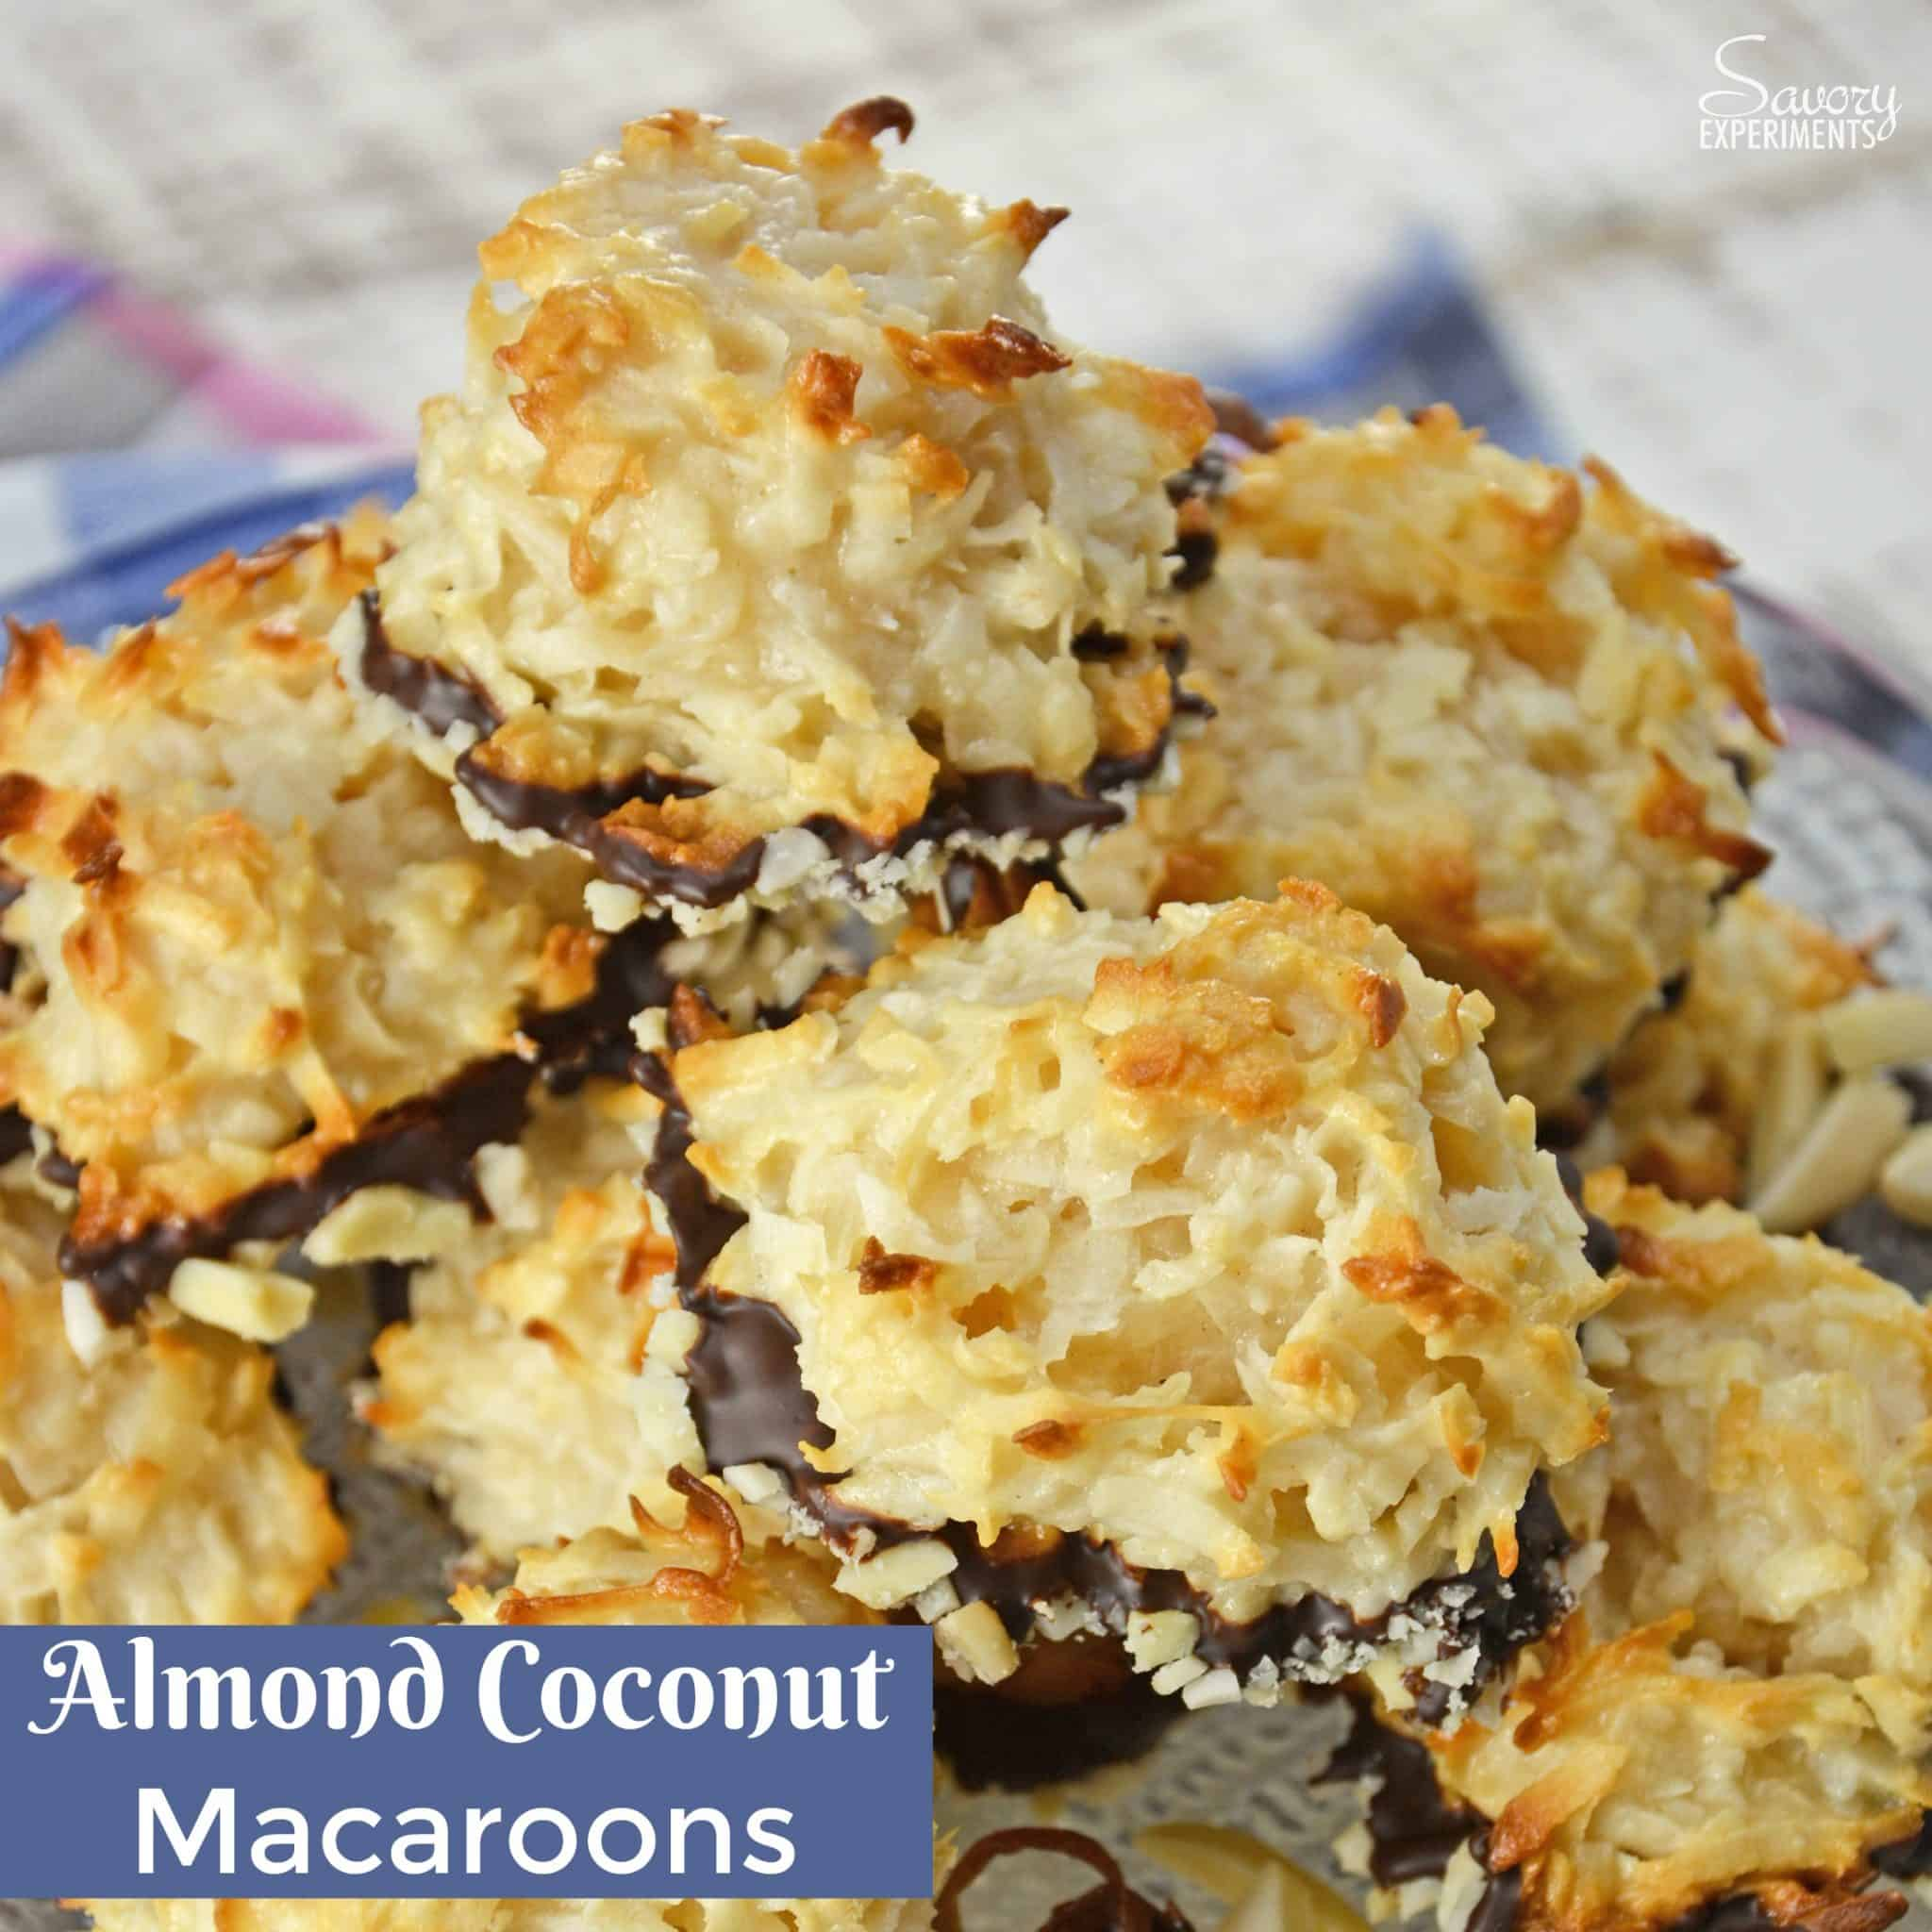 Almond Coconut Macaroons are light, fluffy coconut biscuits dipped in chocolate and almonds. Perfect as a dessert, for tea for as a an afternoon snack. #coconutmacaroons #macaroonsrecipe www.savoryexperiments.com